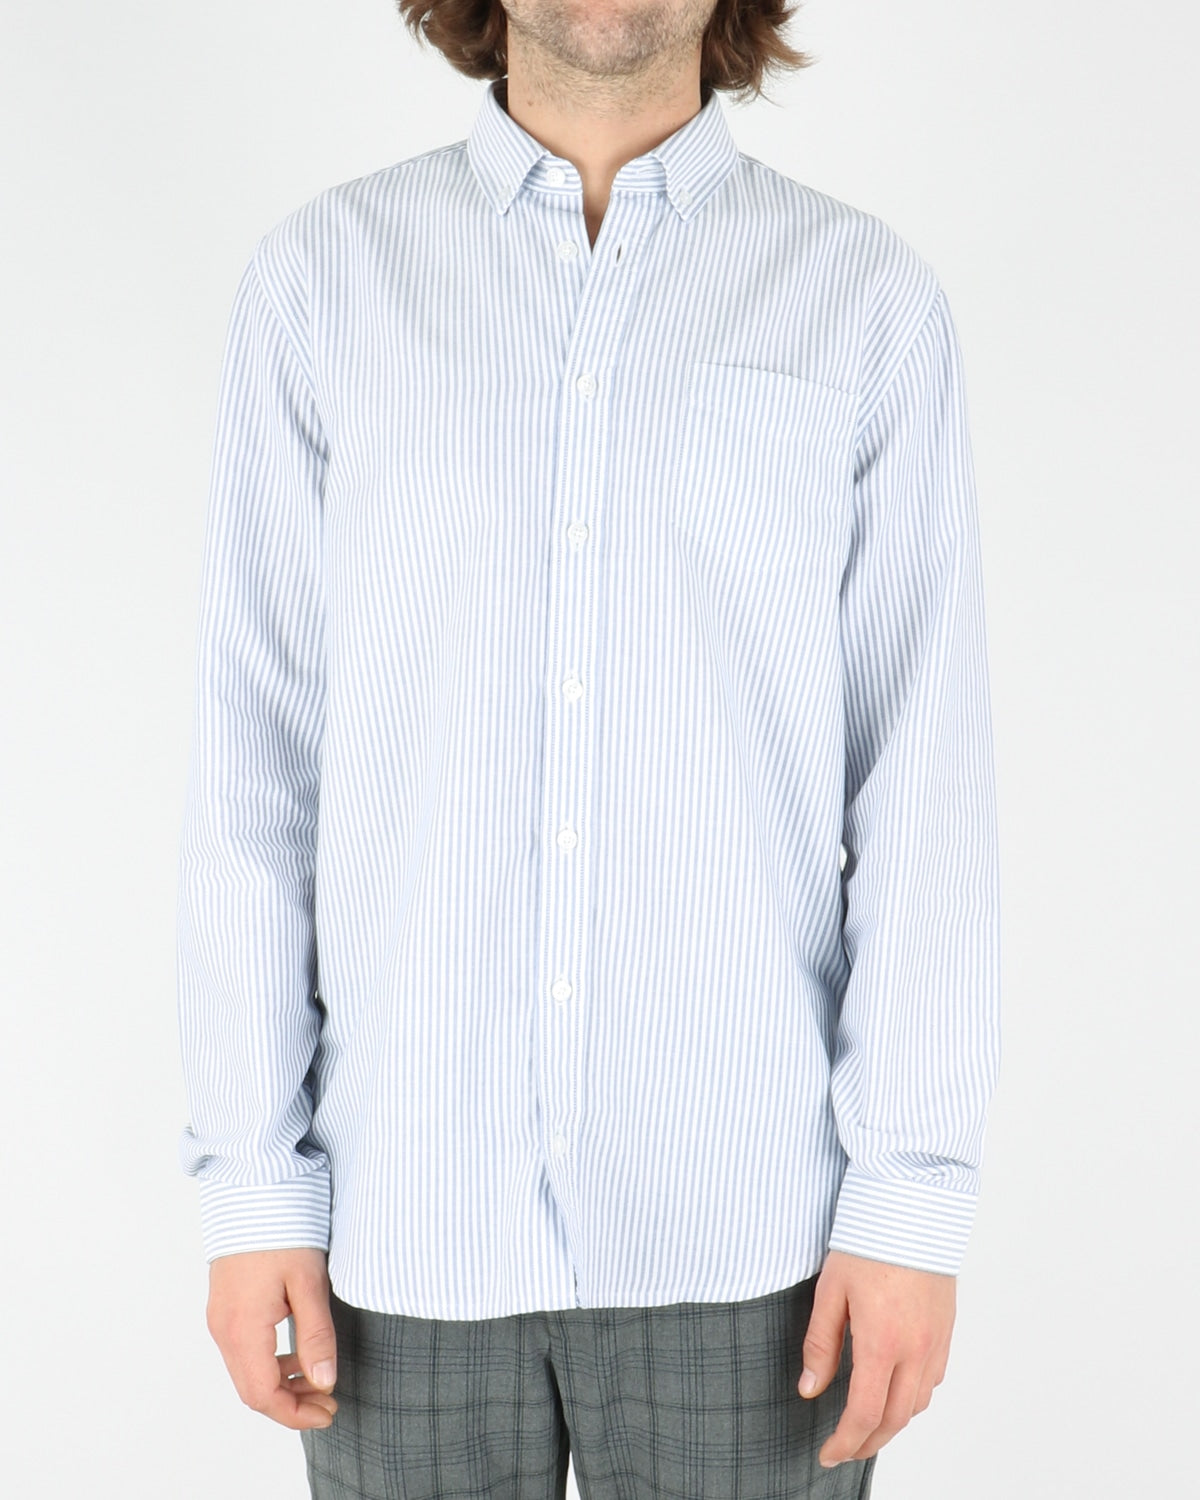 libertine libertine_hunter shirt_white w. blue stripes_1_4